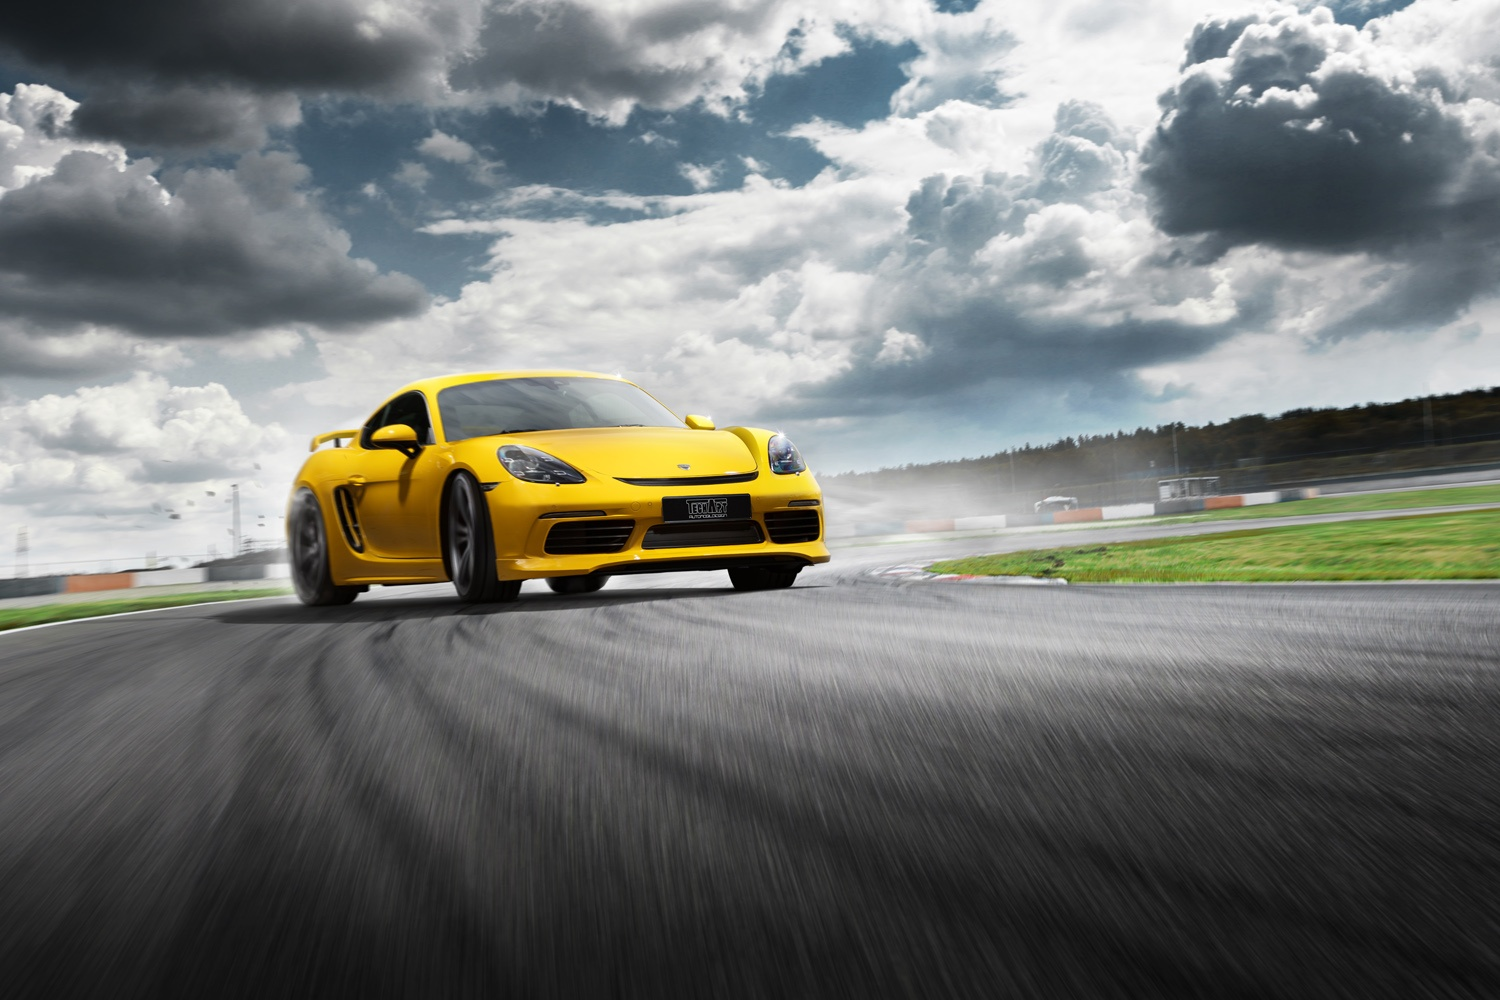 TECHART offers aerokit for 718 Cayman in a limited time GT Package until October 30, 2020